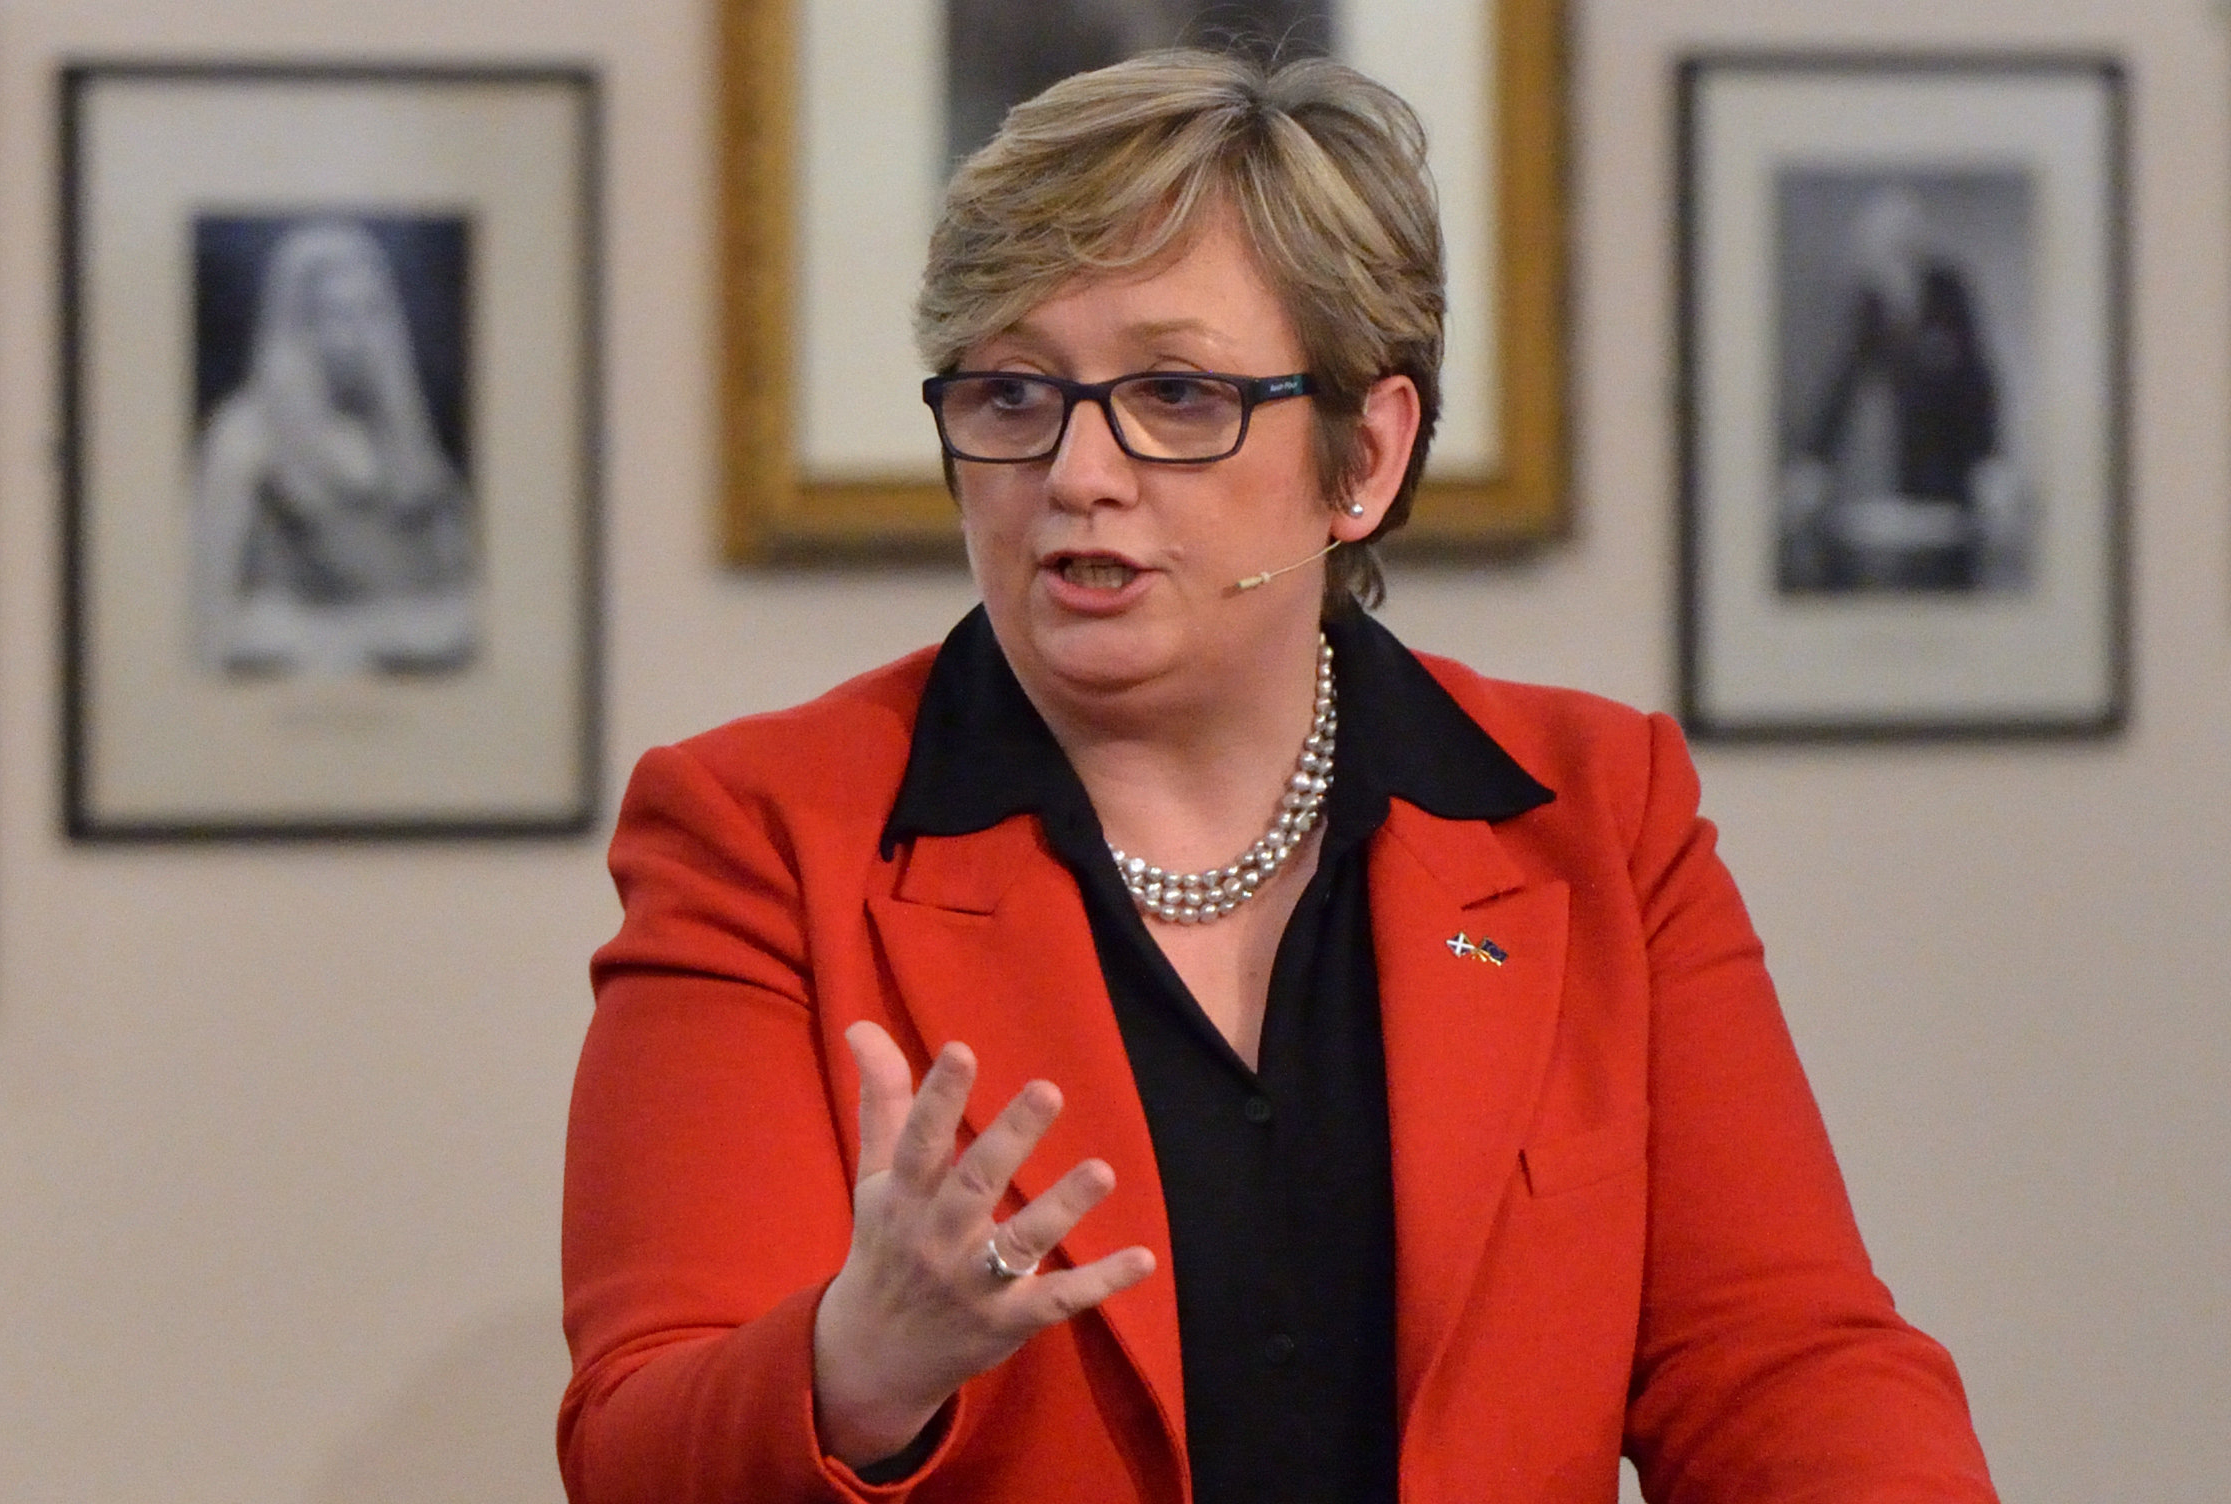 Joanna Cherry has suggested using a majority of Scottish MPs elected in a General Election as a justification to negotiate independence